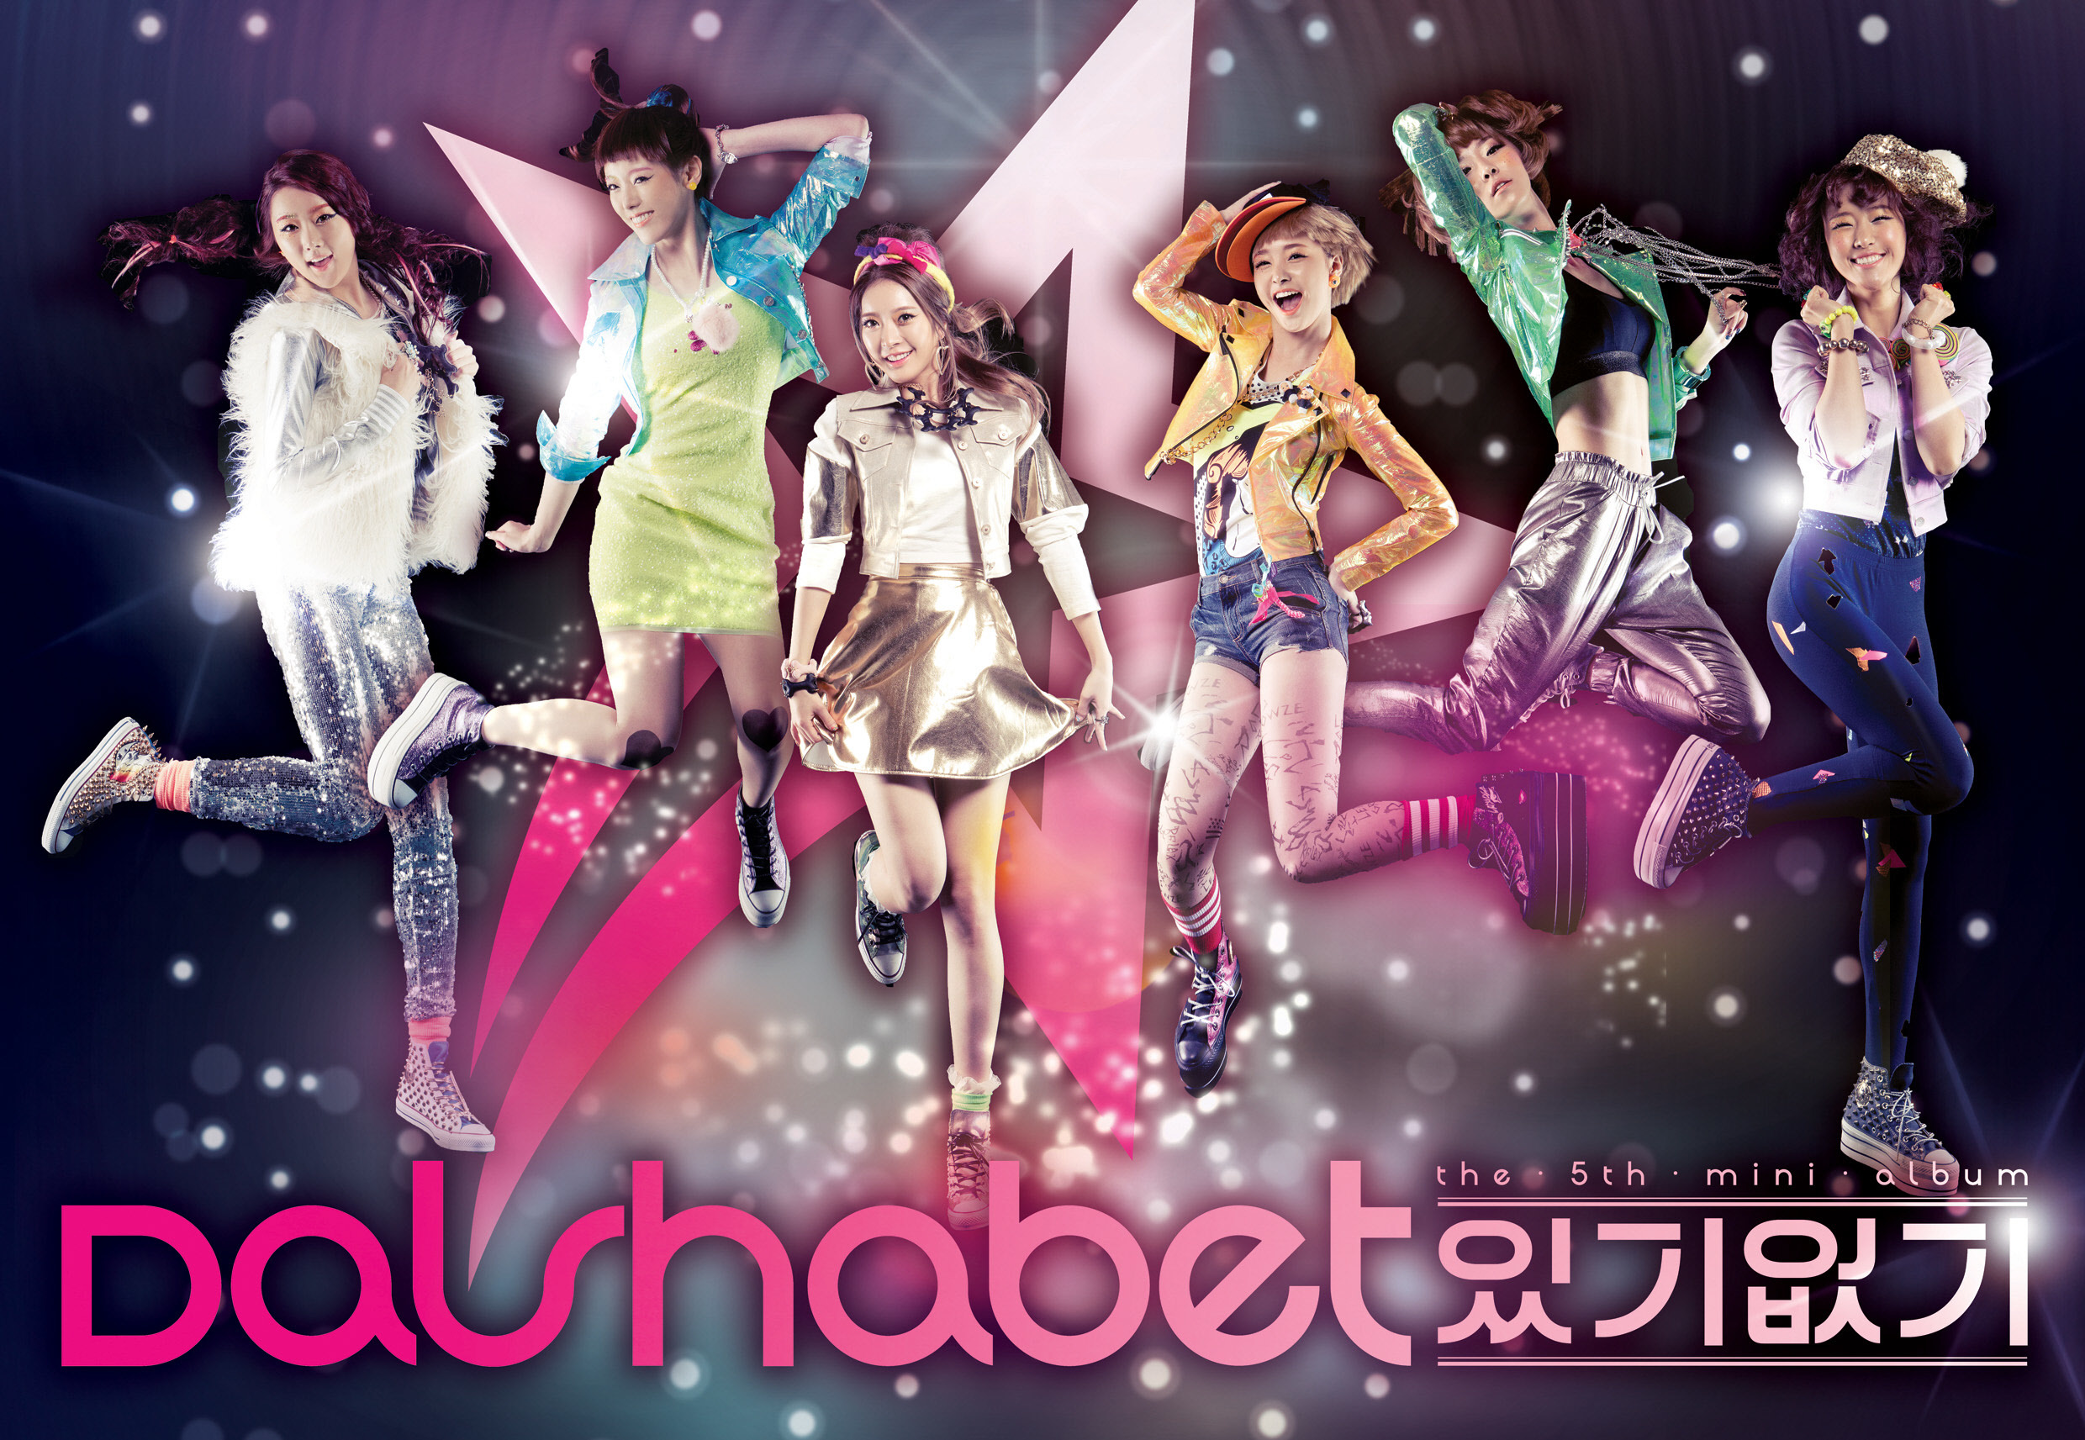 Dalshabet Have, Don't Have cover art.png